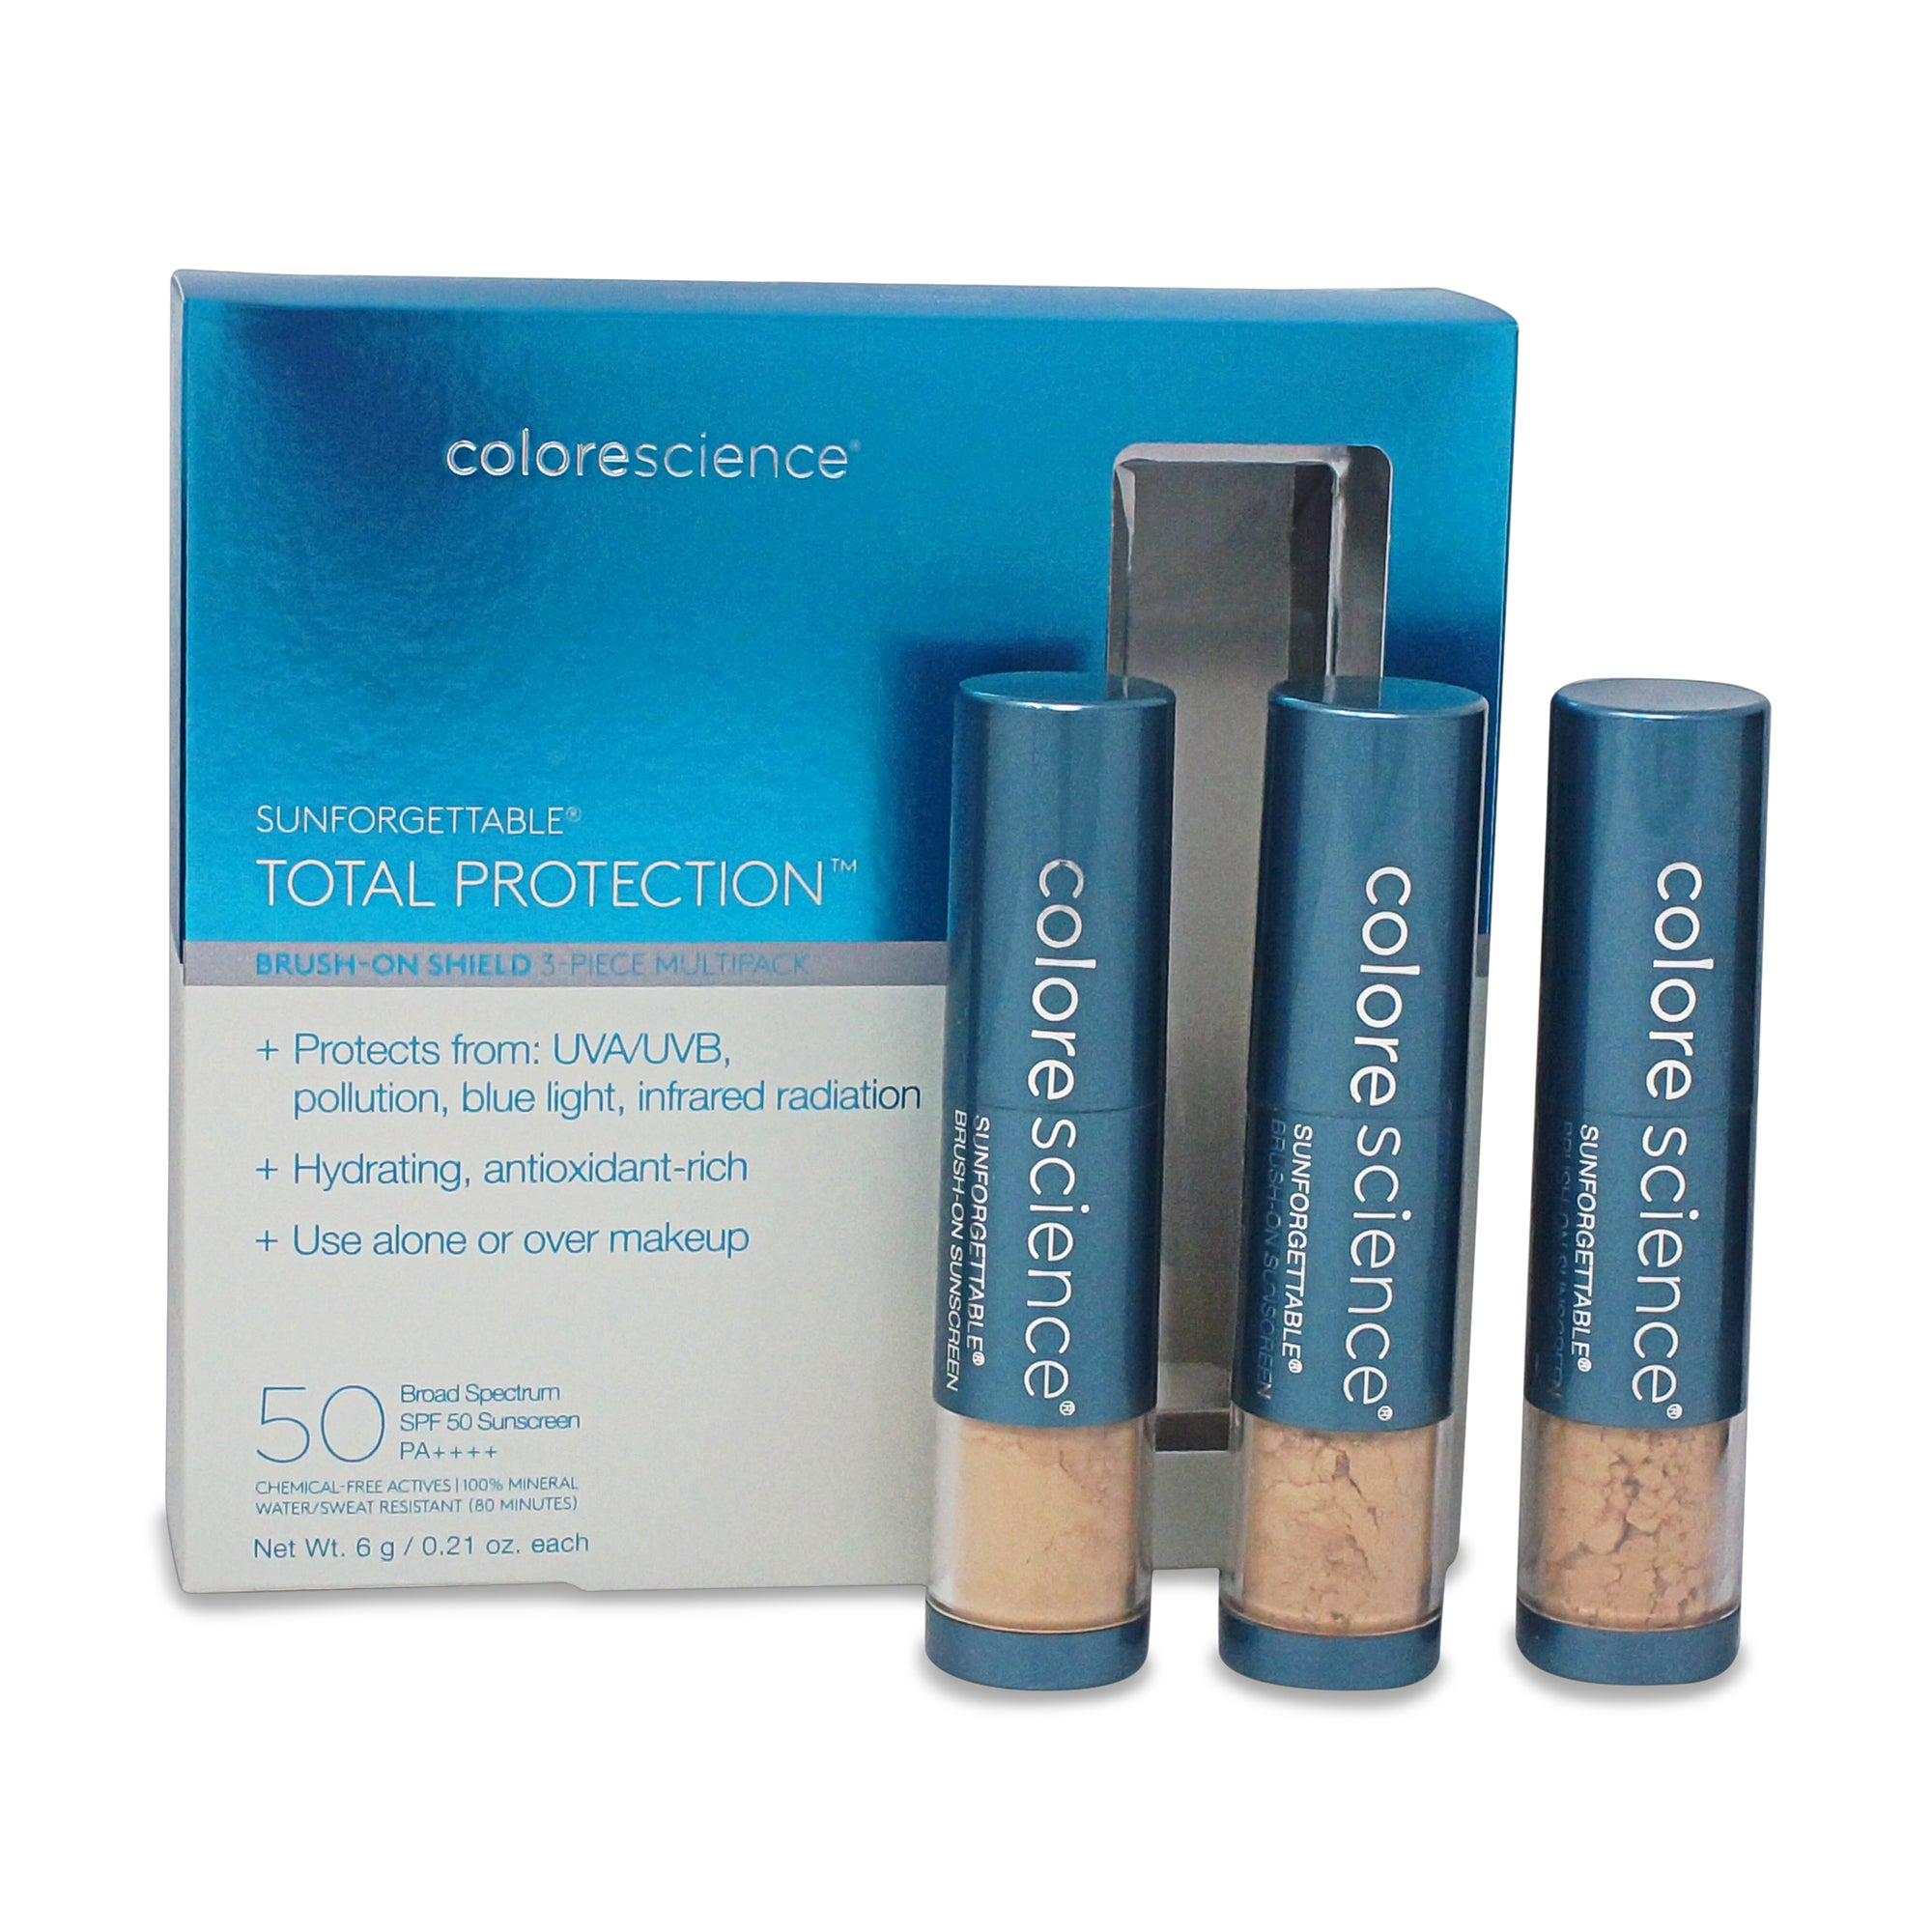 COLORESCIENCE ~ SUNFORGETTABLE ~ TOTAL PROTECTION BRUSH-ON SHIELD SPF 50 ~ MEDIUM 3 PCS SET   **NEW**